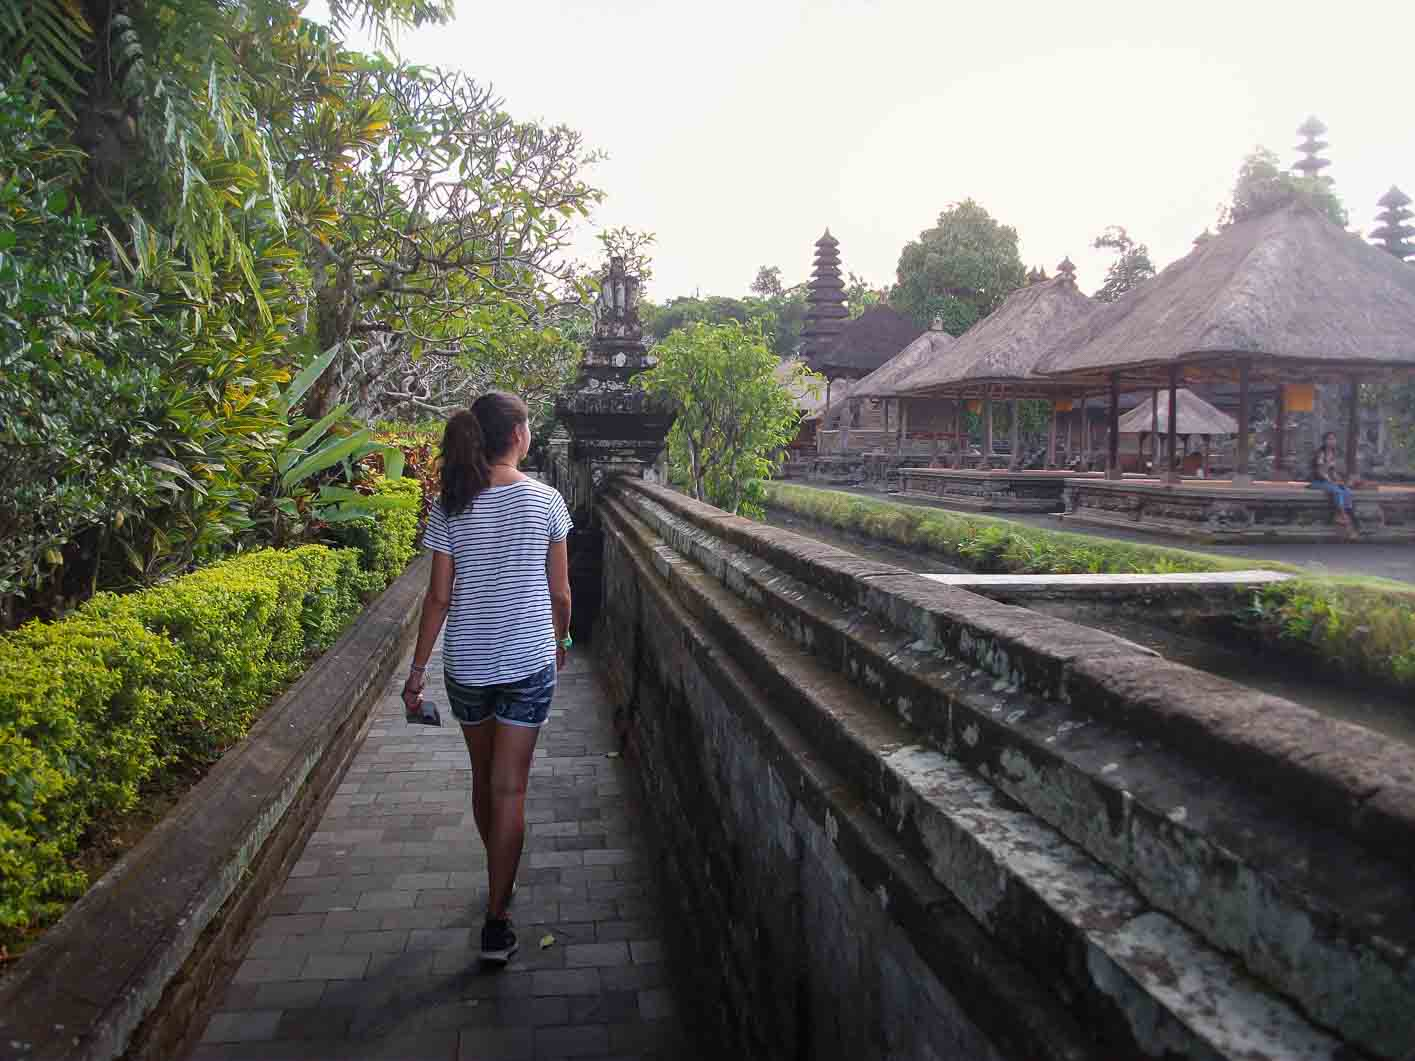 Walking on streets of Bali help to learn and experience the rich inherit culture of bali